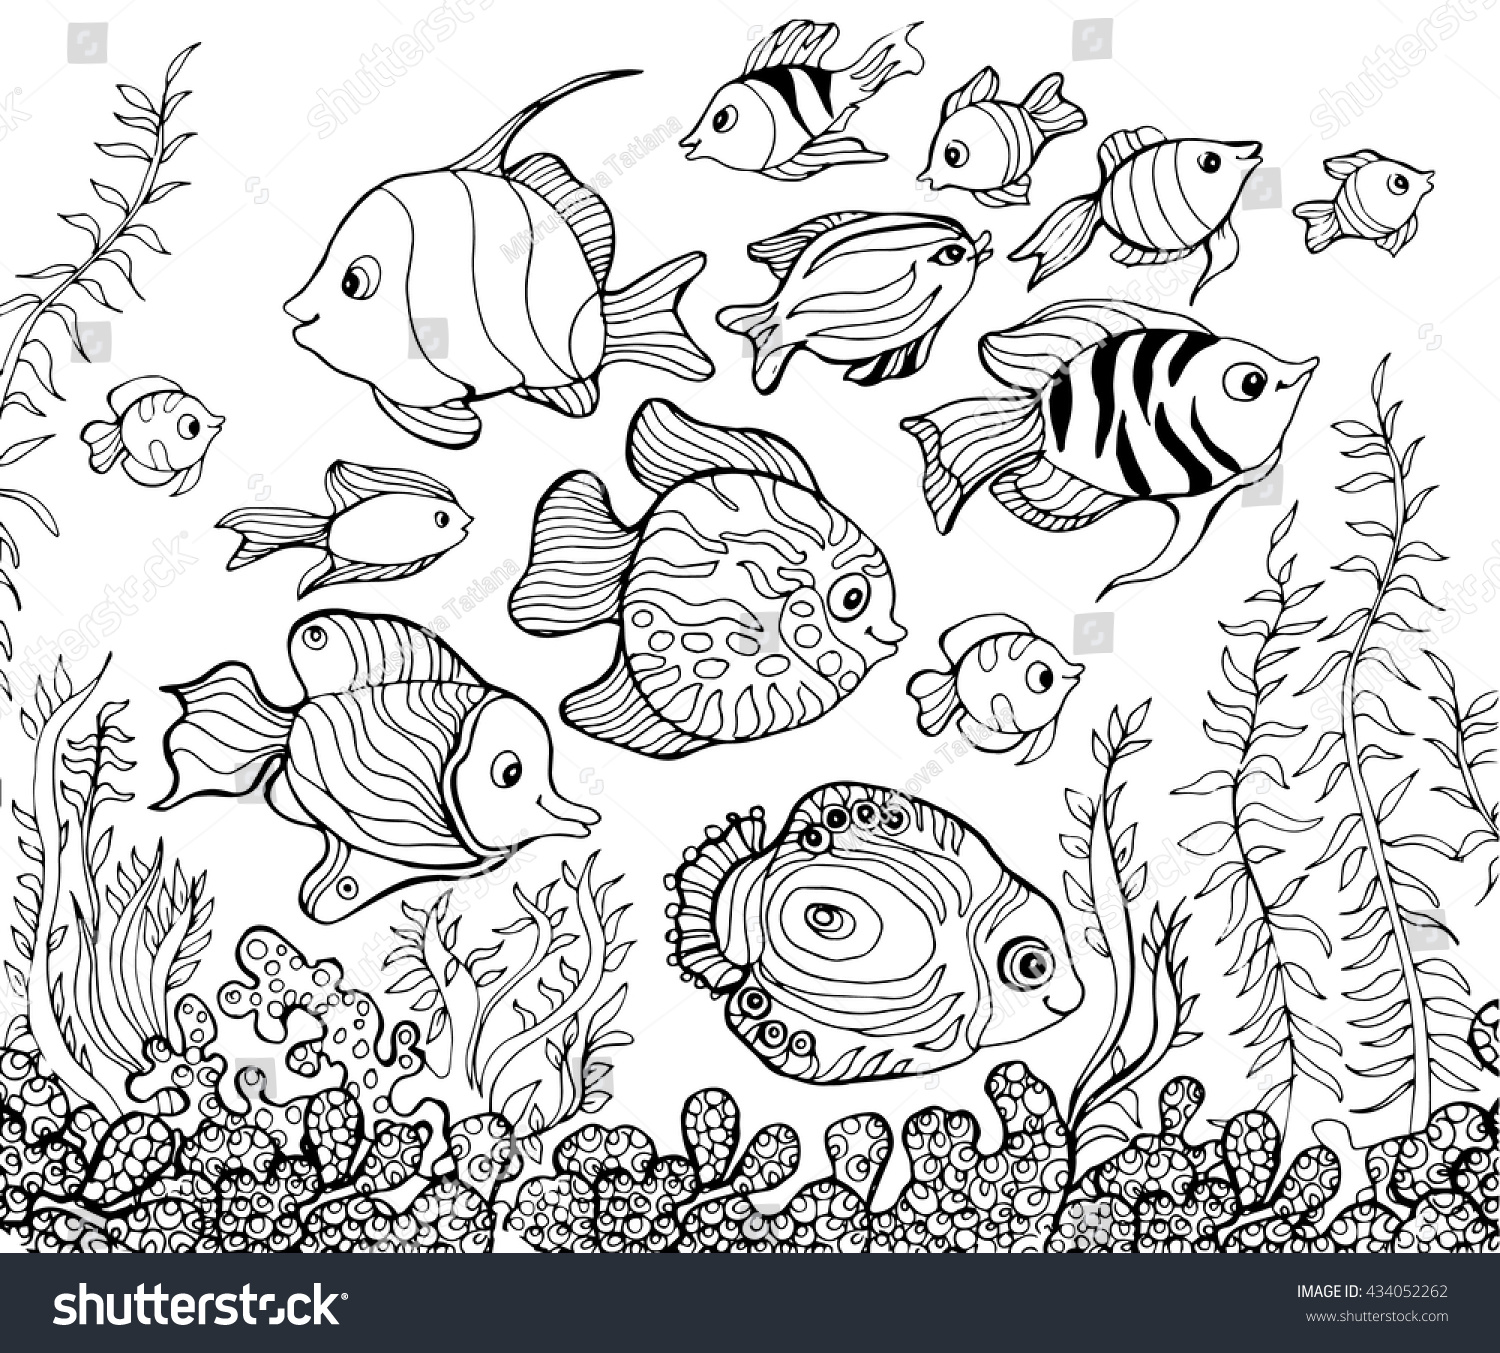 Outline Drawing Underwaterfishcoloring Pages Kids Stock Vektorgrafik